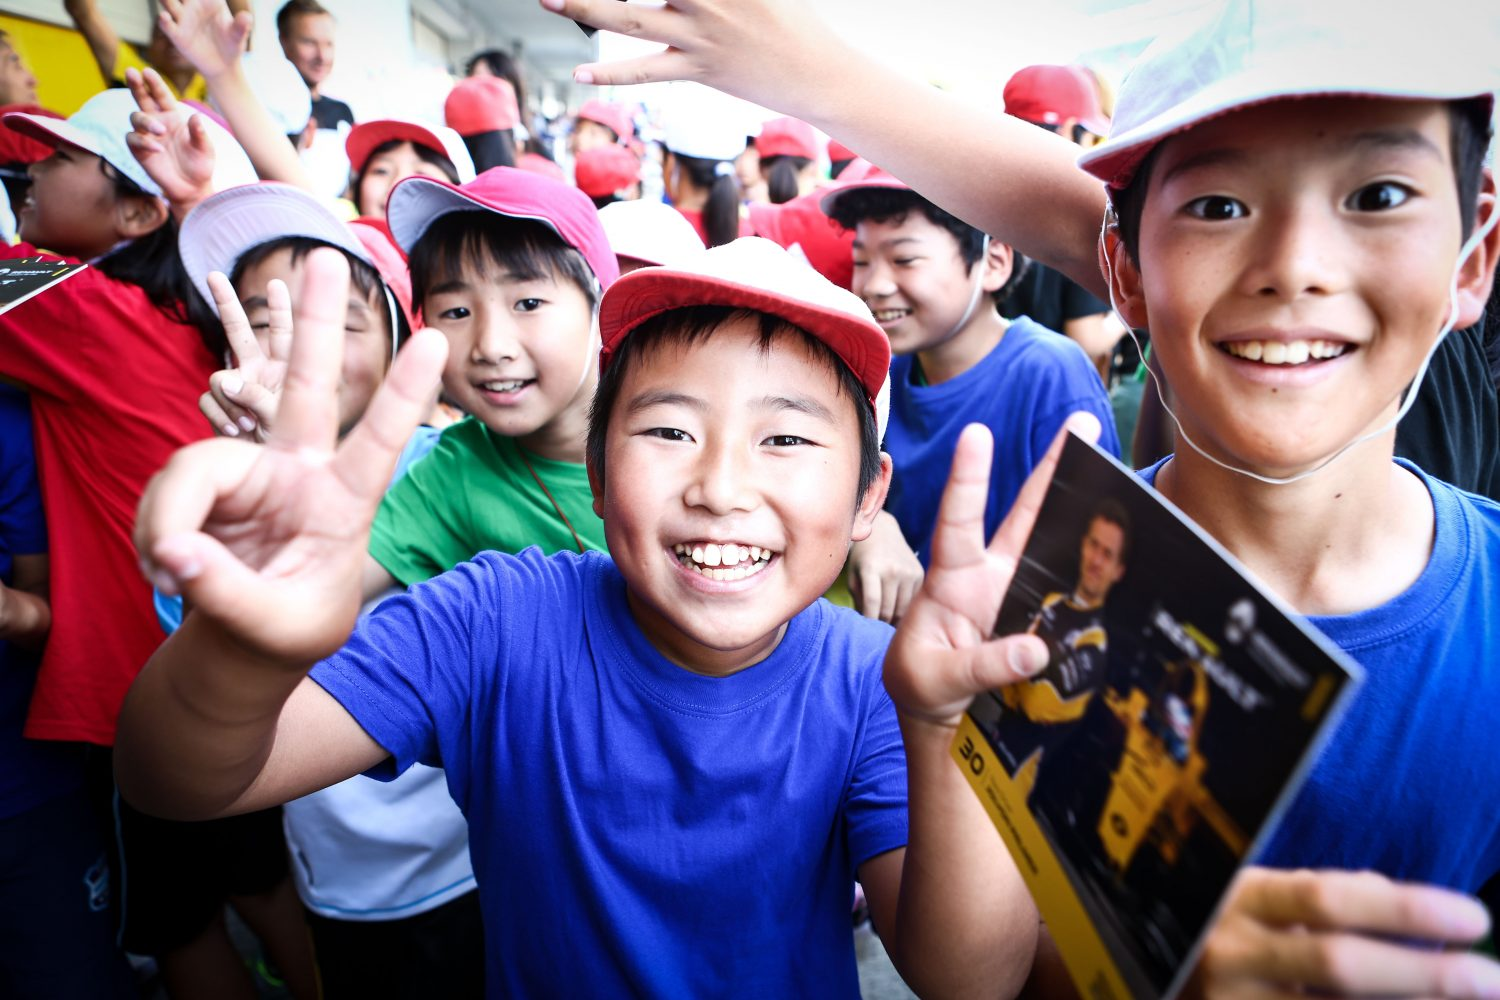 Formula One World Championship 2016, Round 17, Japanese Grand Prix, Suzuka, Japan, Thursday 6 October 2016 - Young Renault Sport F1 Team fans.